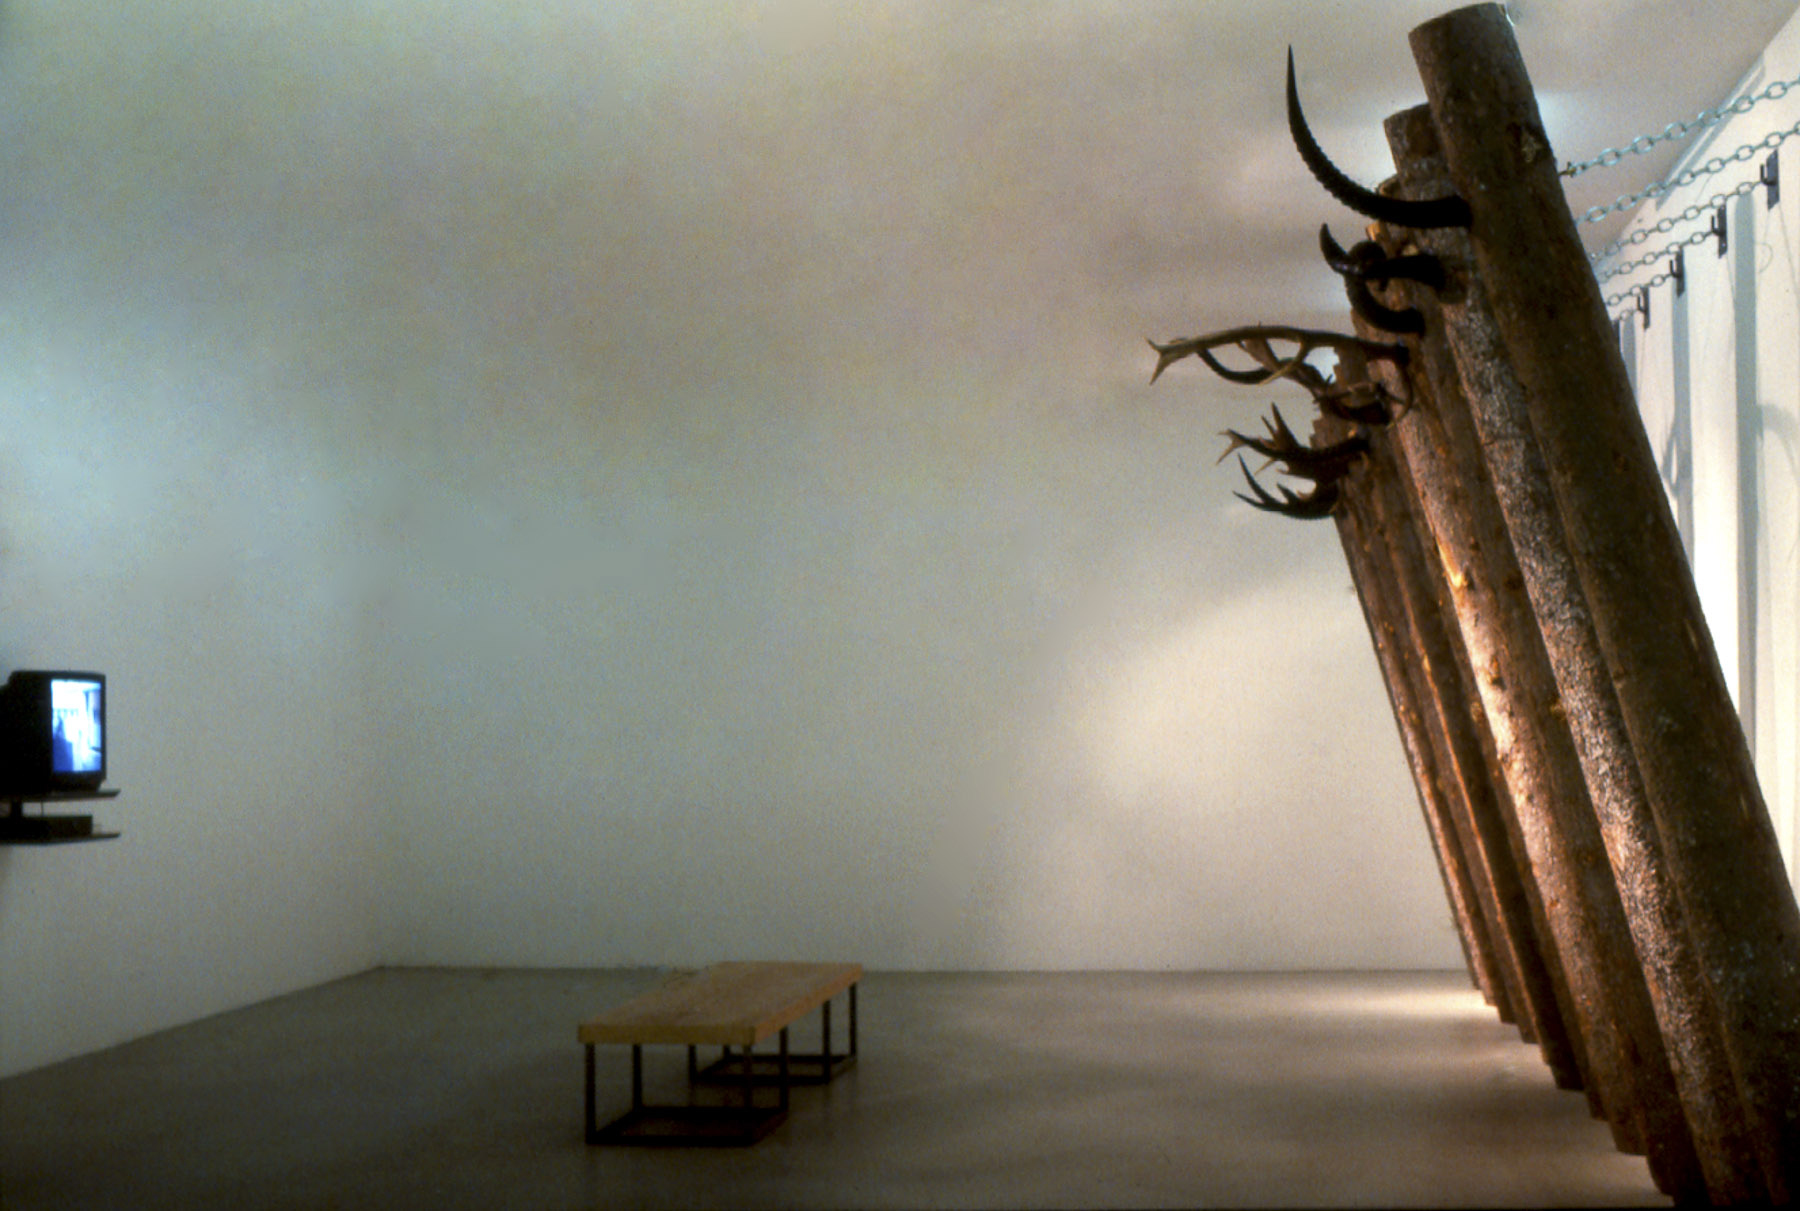 Out of Africa. 1996, Installation, tree trunks, animal horns, chains and video monitor with the film out of Africa. Kunst Hall Krems, Austria.